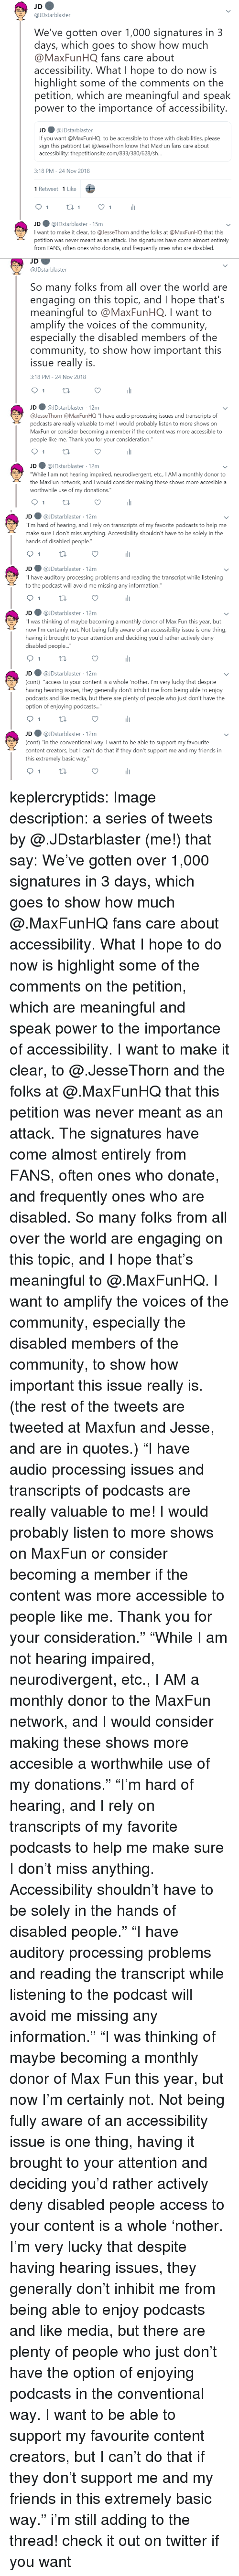 "Podcasts: JDstarblaster  We've gotten over 1,000 signatures in 3  days, which goes to show how much  @MaxFunHQ fans care about  accessibility. What I hope to do now is  highlight some of the comments on the  petition, which are meaningful and speak  power to the importance of accessibility  JD ● @lDstarblaster  If you want @MaxFunHQ to be accessible to those with disabilities, please  sign this petition! Let @JesseThorn know that MaxFun fans care about  accessibility: thepetitionsite.com/833/380/628/s...  3:18 PM-24 Nov 2018  1 Retweet 1 Like  JD @JDstarblaster 15m  I want to make it clear, to @JesseThorn and the folks at @MaxFunHQ that this  petition was never meant as an attack. The signatures have come almost entirely  from FANS, often ones who donate, and frequently ones who are disabled.   JD  @JDstarblaster  So many folks from all over the world are  engaging on this topic, and I hope that's  meaningful to @MaxFunHQ. I want to  amplify the voices of the community,  especially the disabled members of the  community, to show how important this  issue really is  3:18 PM-24 Nov 2018  JD ● @JDstarblaster· 12m  @lesseThorn @MaxFun HQ ""I have audio processing issues and transcripts of  о,  dcasts are really valuable to me! I would probably listen to more shows on  MaxFun or consider becoming a member if the content was more accessible to  people like me. Thank you for your consideration.""  JD@JDstarblaster 12m  While I am not hearing impaired, neurodivergent, etc., IAM a monthly donor to  the MaxFun network, and I would consider making these shows more accesible a  worthwhile use of my donations.""   JD@JDstarblaster 12m  ou""I'm hard of hearing, and I rely on transcripts of my favorite podcasts to help me  make sure I don't miss anything. Accessibility shouldn't have to be solely in the  hands of disabled people  JD@JDstarblaster 12m  have auditory processing problems and reading the transcript while listening  to the podcast will avoid me missing any information.""  JD@JDstarblaster 12m  was thinking of maybe becoming a monthly donor of Max Fun this year, but  now I'm certainly not. Not being fully aware of an accessibility issue is one thing  having it brought to your attention and deciding you'd rather actively deny  disabled people...""  JD@JDstarblaster 12m  (cont) ""access to your content is a whole 'nother. I'm very lucky that despite  having hearing issues, they generally don't inhibit me from being able to enjoy  podcasts and like media, but there are plenty of people who just don't have the  option of enjoying podcasts...  JD@JDstarblaster 12m  cont) ""in the conventional way. I want to be able to support my favourite  content creators, but I can't do that if they don't support me and my friends in  this extremely basic way."" keplercryptids: Image description: a series of tweets by @.JDstarblaster (me!) that say: We've gotten over 1,000 signatures in 3 days, which goes to show how much @.MaxFunHQ fans care about accessibility. What I hope to do now is highlight some of the comments on the petition, which are meaningful and speak power to the importance of accessibility. I want to make it clear, to @.JesseThorn and the folks at @.MaxFunHQ that this petition was never meant as an attack. The signatures have come almost entirely from FANS, often ones who donate, and frequently ones who are disabled. So many folks from all over the world are engaging on this topic, and I hope that's meaningful to @.MaxFunHQ. I want to amplify the voices of the community, especially the disabled members of the community, to show how important this issue really is. (the rest of the tweets are tweeted at Maxfun and Jesse, and are in quotes.) ""I have audio processing issues and transcripts of podcasts are really valuable to me! I would probably listen to more shows on MaxFun or consider becoming a member if the content was more accessible to people like me. Thank you for your consideration."" ""While I am not hearing impaired, neurodivergent, etc., I AM a monthly donor to the MaxFun network, and I would consider making these shows more accesible a worthwhile use of my donations."" ""I'm hard of hearing, and I rely on transcripts of my favorite podcasts to help me make sure I don't miss anything. Accessibility shouldn't have to be solely in the hands of disabled people."" ""I have auditory processing problems and reading the transcript while listening to the podcast will avoid me missing any information."" ""I was thinking of maybe becoming a monthly donor of Max Fun this year, but now I'm certainly not. Not being fully aware of an accessibility issue is one thing, having it brought to your attention and deciding you'd rather actively deny disabled people access to your content is a whole 'nother. I'm very lucky that despite having hearing issues, they generally don't inhibit me from being able to enjoy podcasts and like media, but there are plenty of people who just don't have the option of enjoying podcasts in the conventional way. I want to be able to support my favourite content creators, but I can't do that if they don't support me and my friends in this extremely basic way."" i'm still adding to the thread! check it out on twitter if you want"